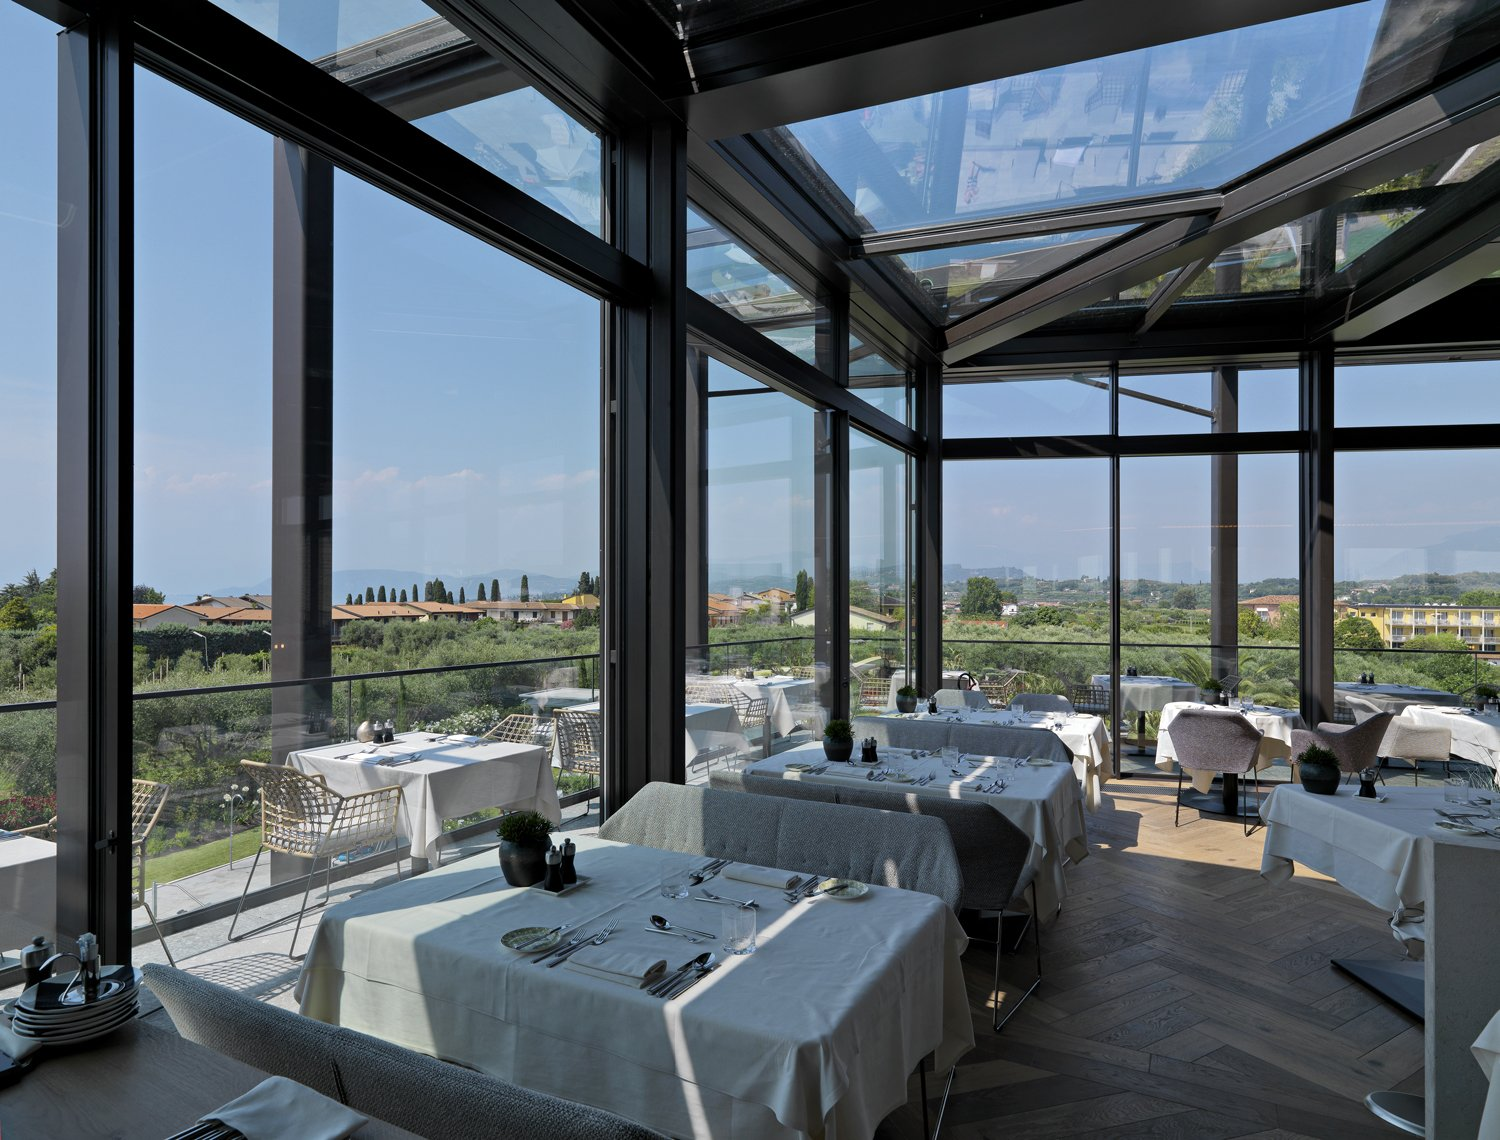 Quellenhof Luxury Resort © Daniele Domenicali, courtesy Schüco